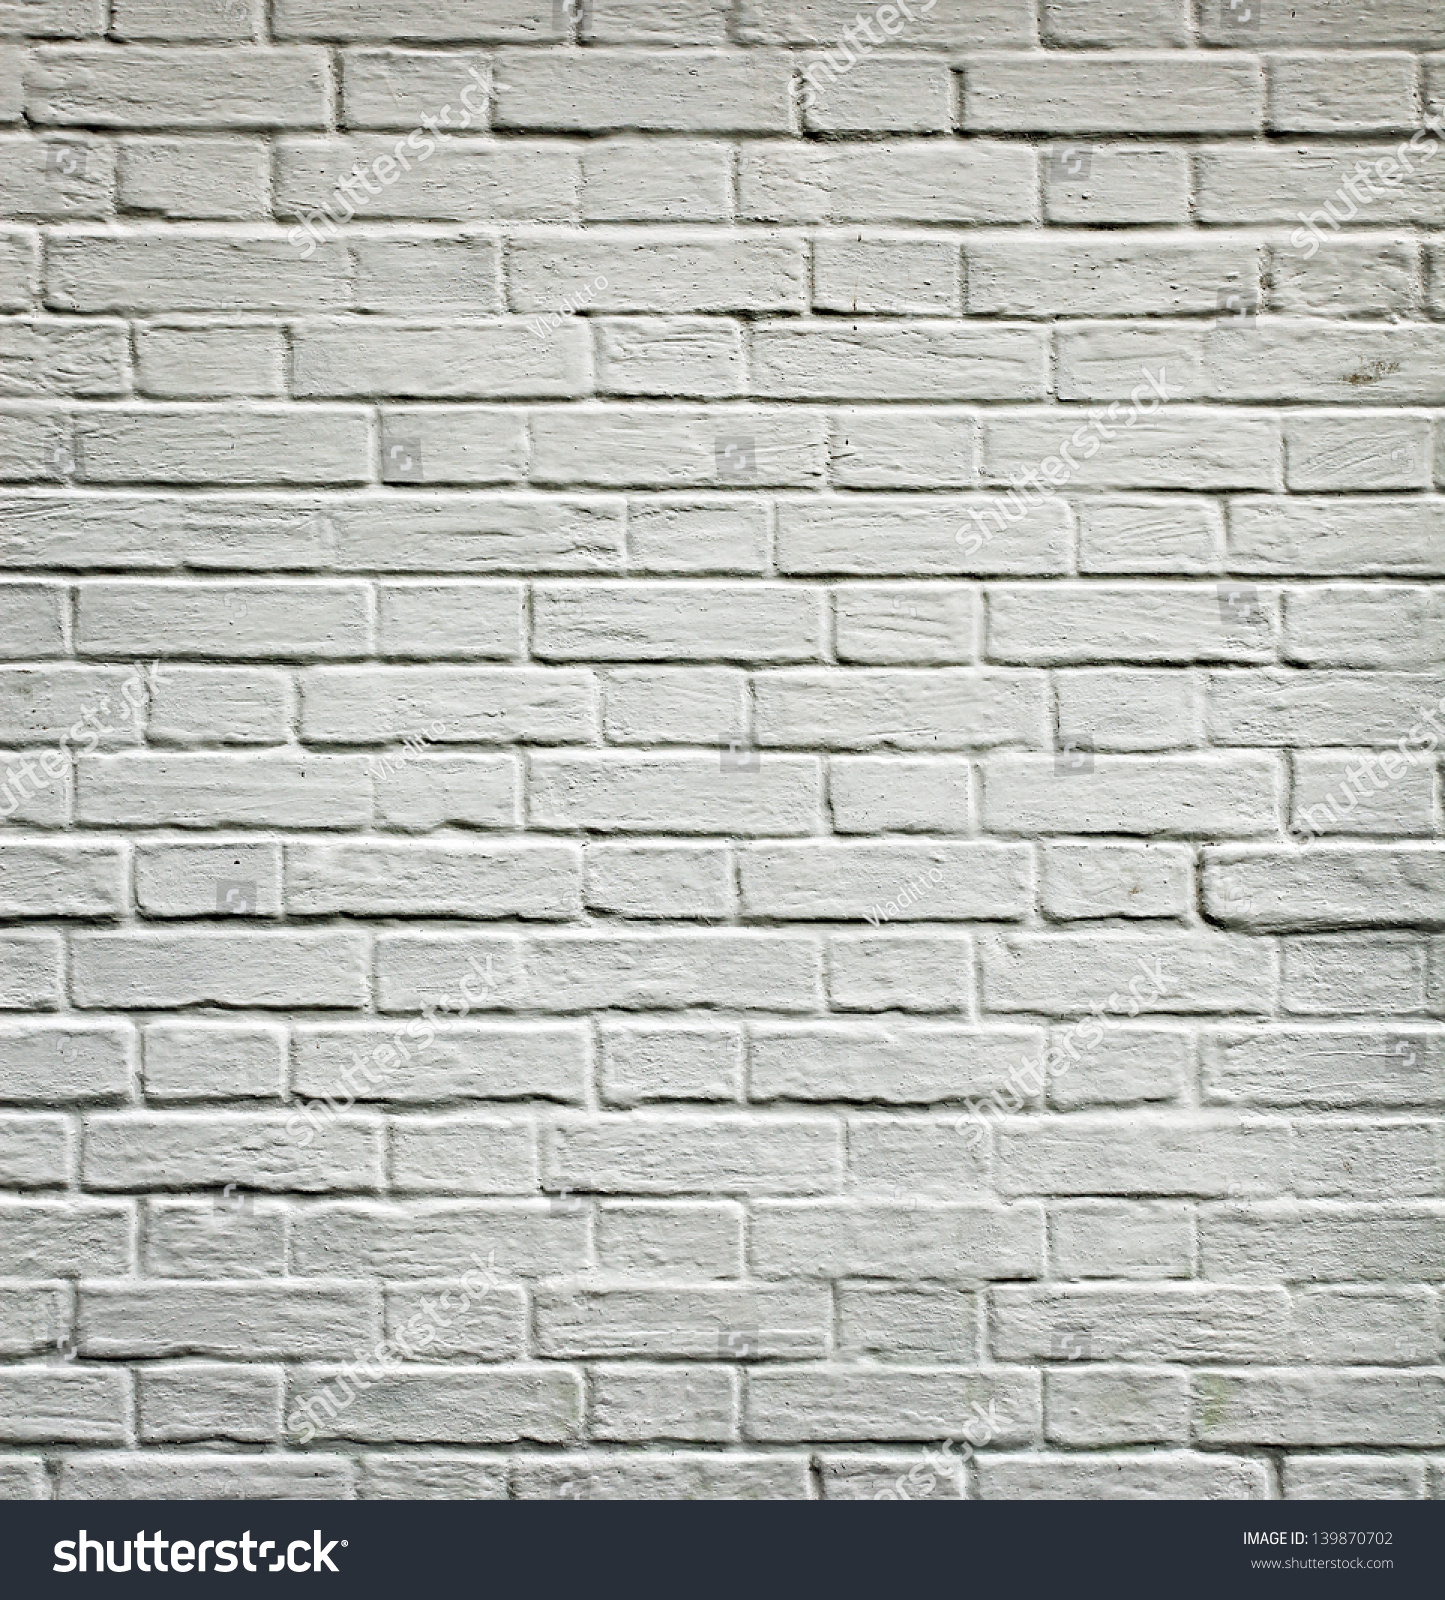 Grungy textured white horizontal stone and brick paint architecture wall inside old neglected - Exterior textured masonry paint model ...